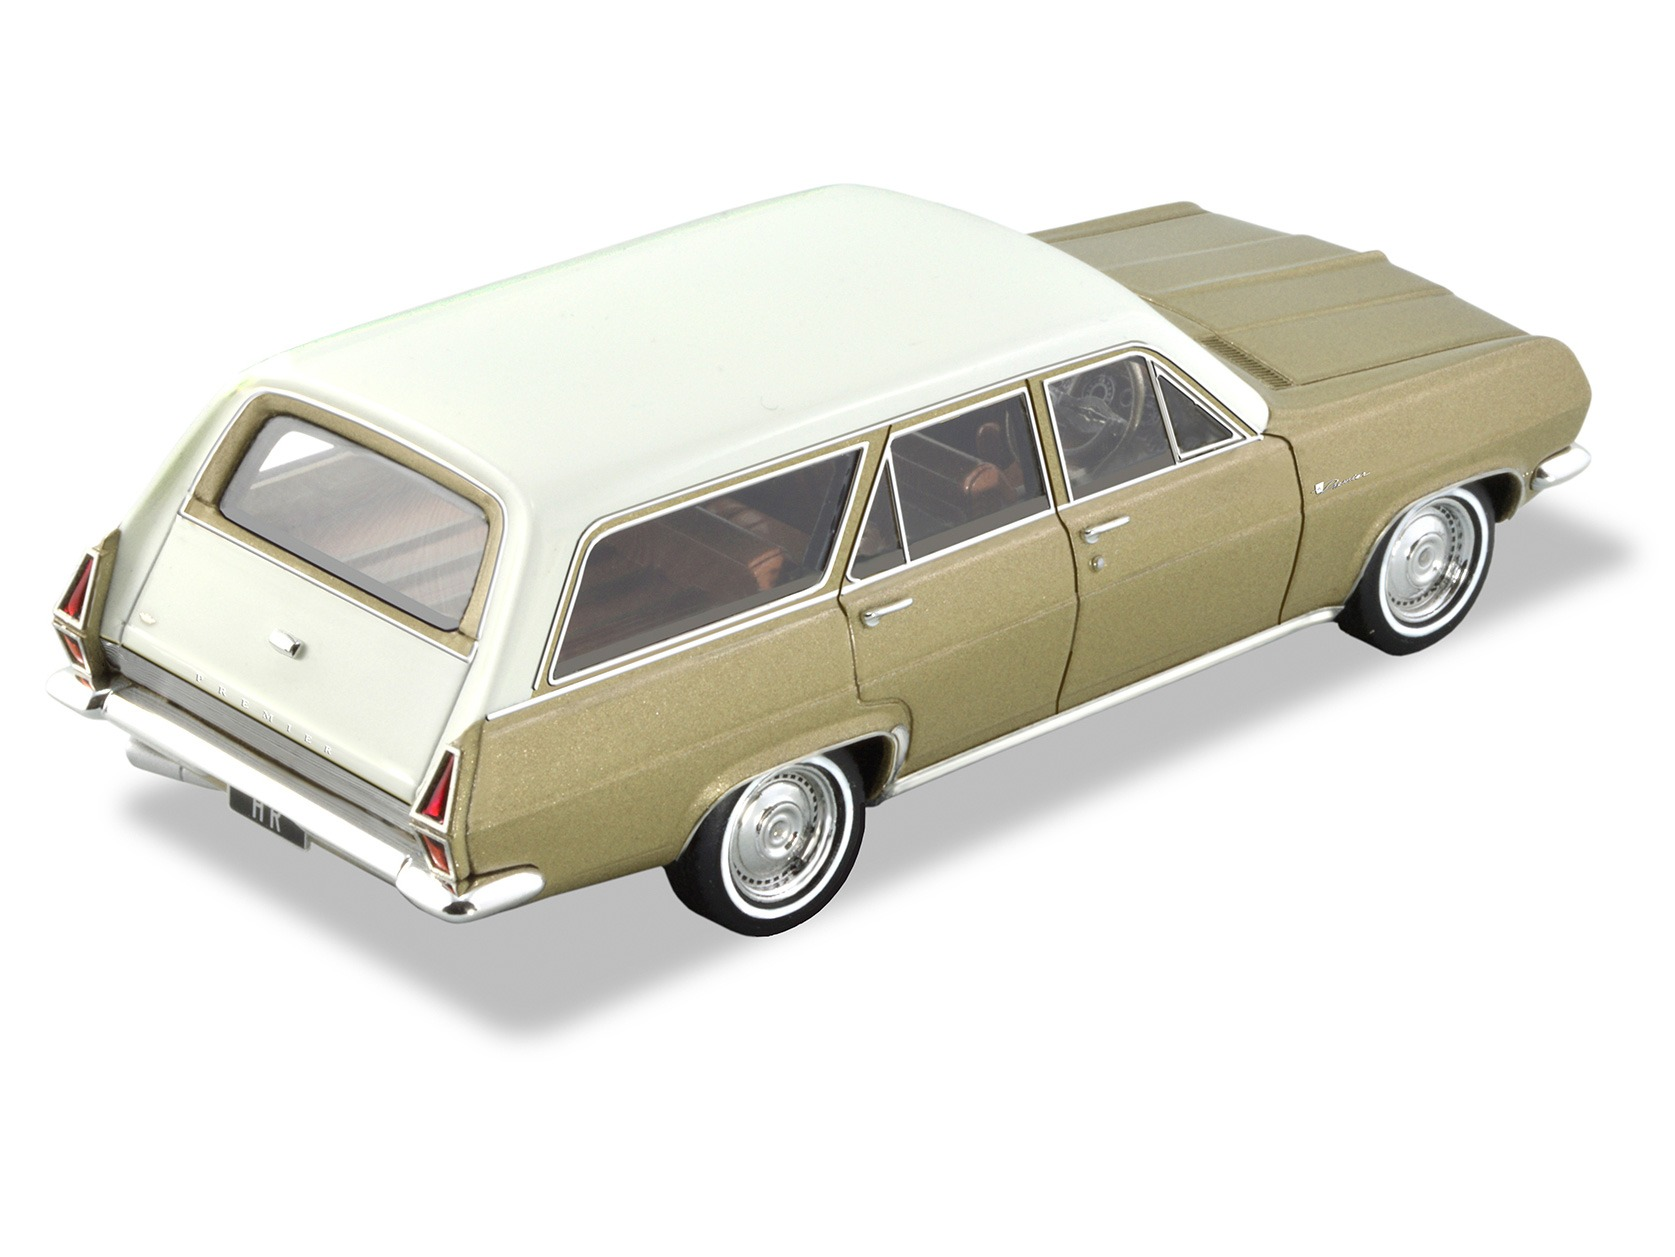 1967 HR Station Wagon – Gold / White